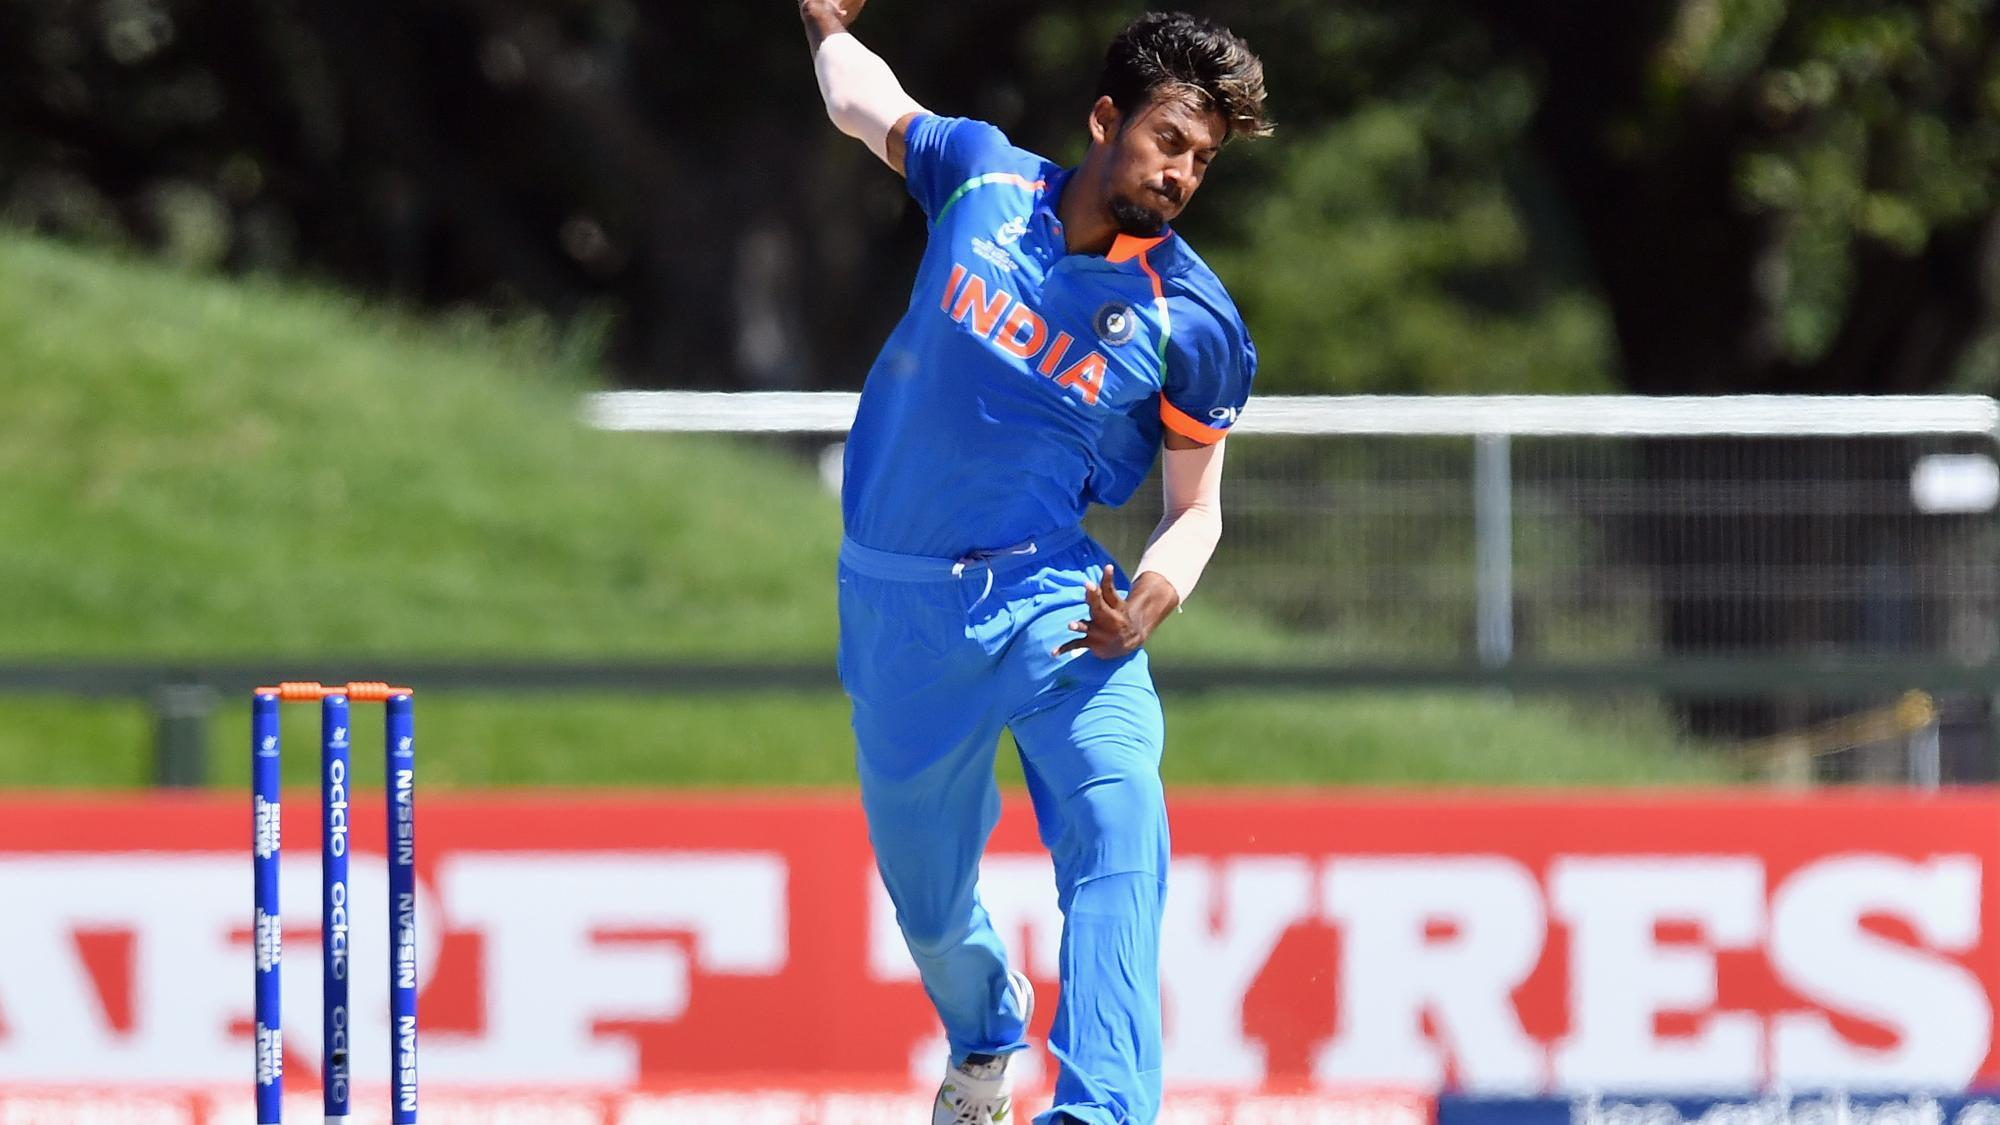 #under19worldcup - Ishan Porel